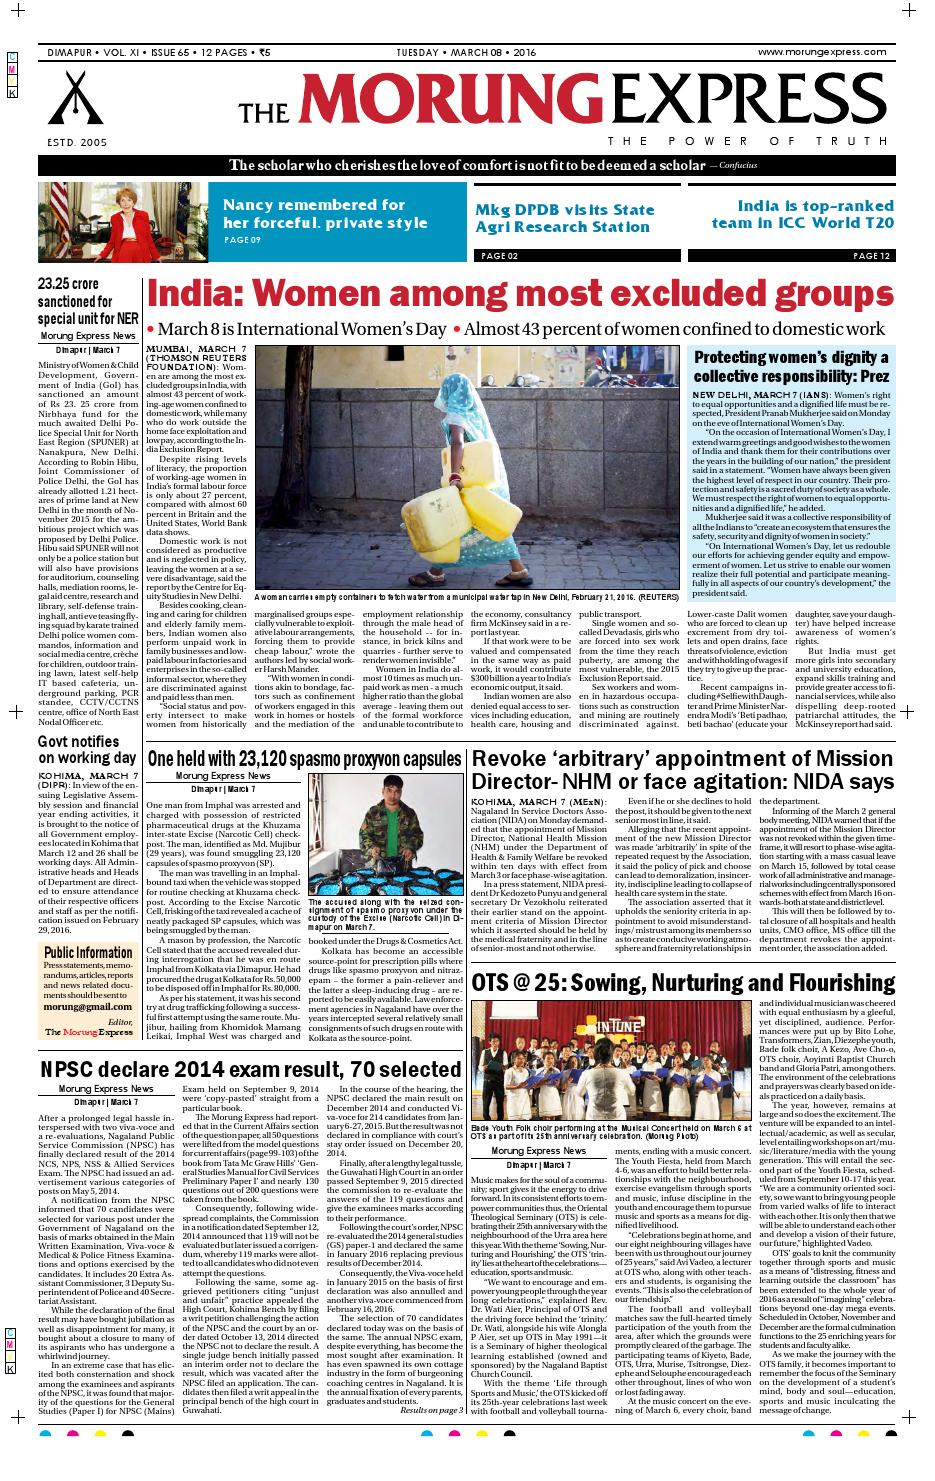 Assocham Surveyabout One­fourth Working Women In The Private Sector Wish To Quit Their Jobs Due To Several Reasons Such As Inconvenient Working Hours Gender Bias Safety Issues Workplace Harass -